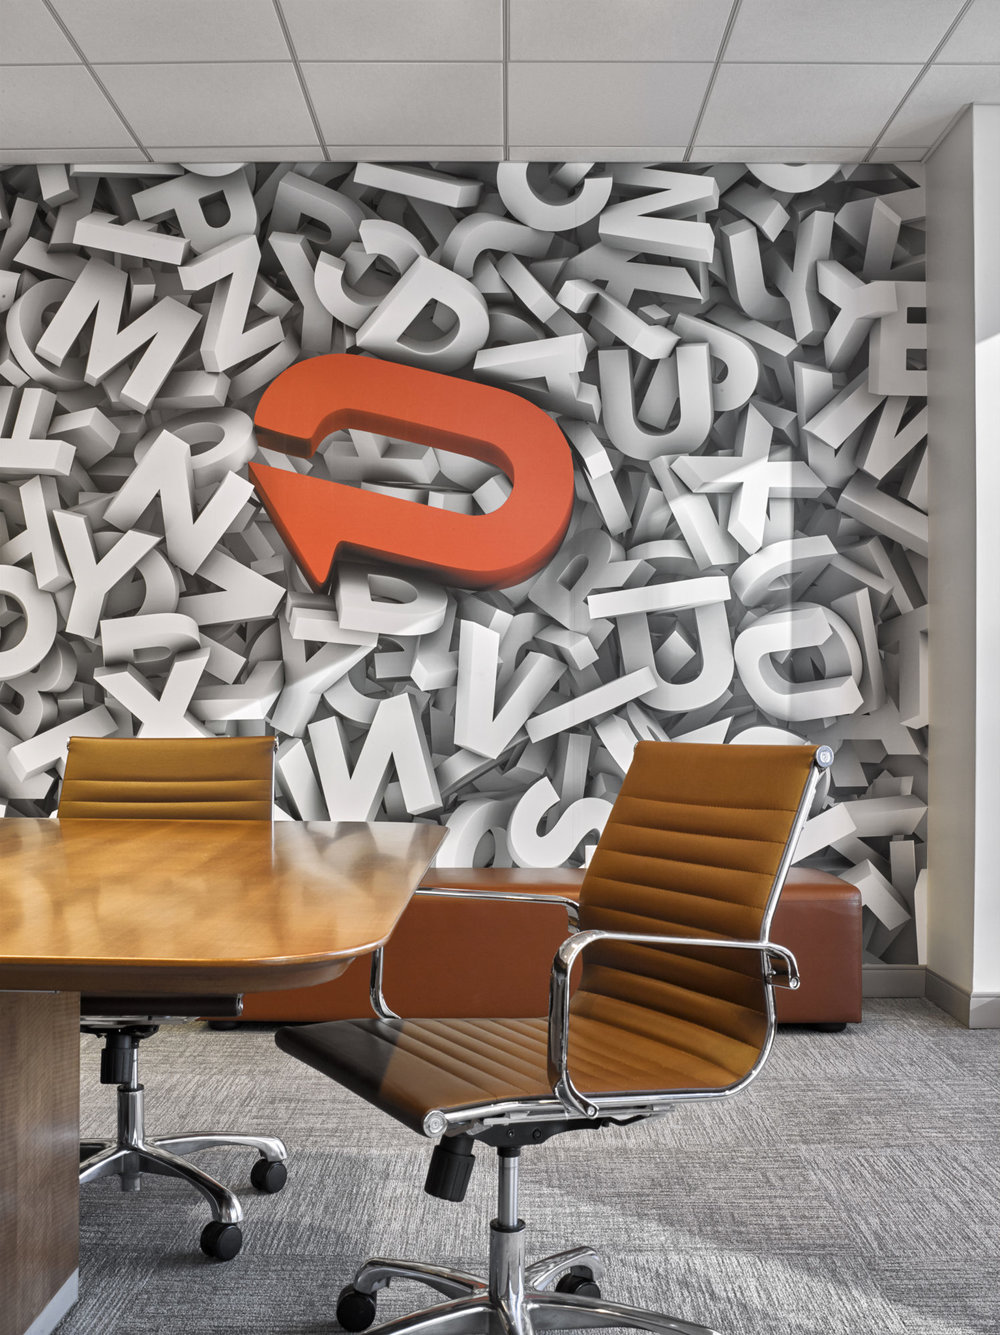 3D wallpaper with the Padilla CRT logo in a conference room at Padilla CRT, New York. MEP provided by 2LS Consulting Engineering.